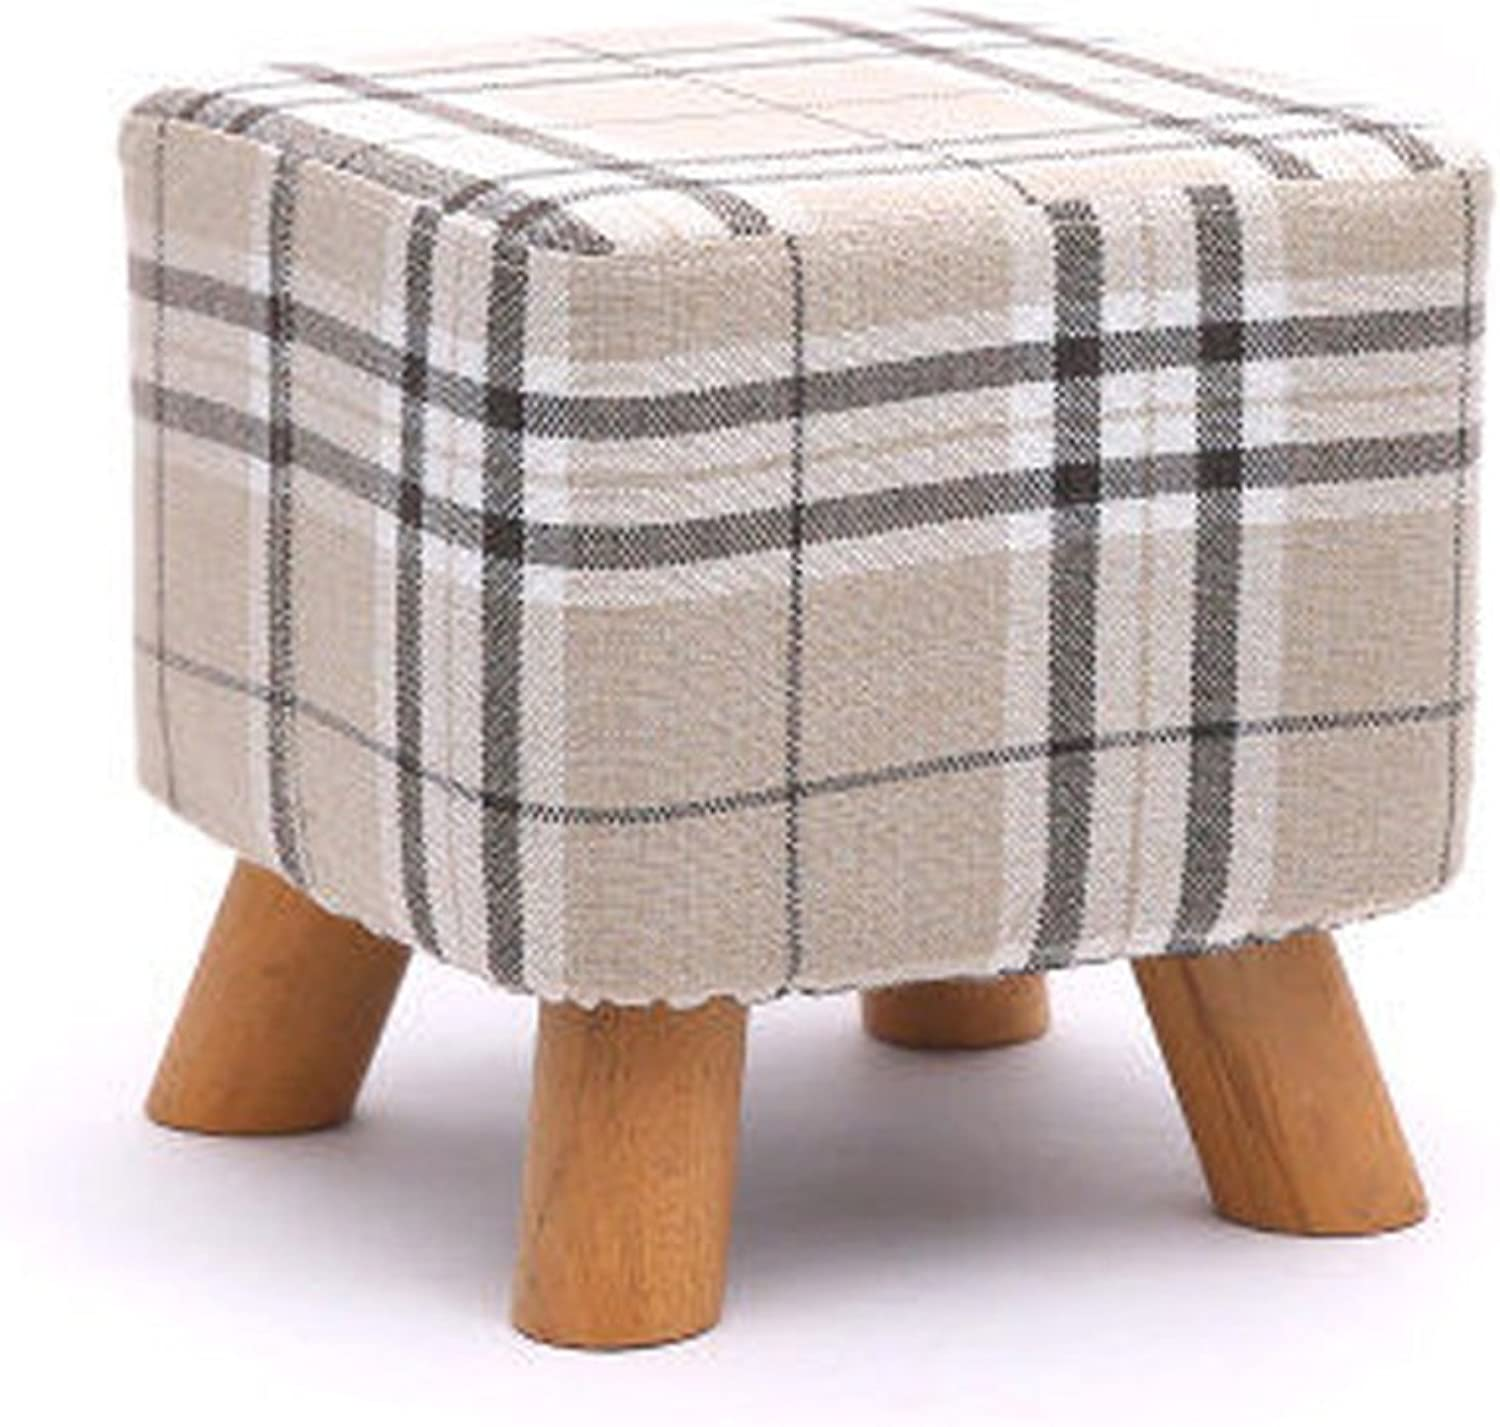 NYDZDM Solid Wood Change shoes Stool Footstool Round Upholstered 3 4 Wood Legs Pouffes Stool Fabric Cover Removable (color    12)